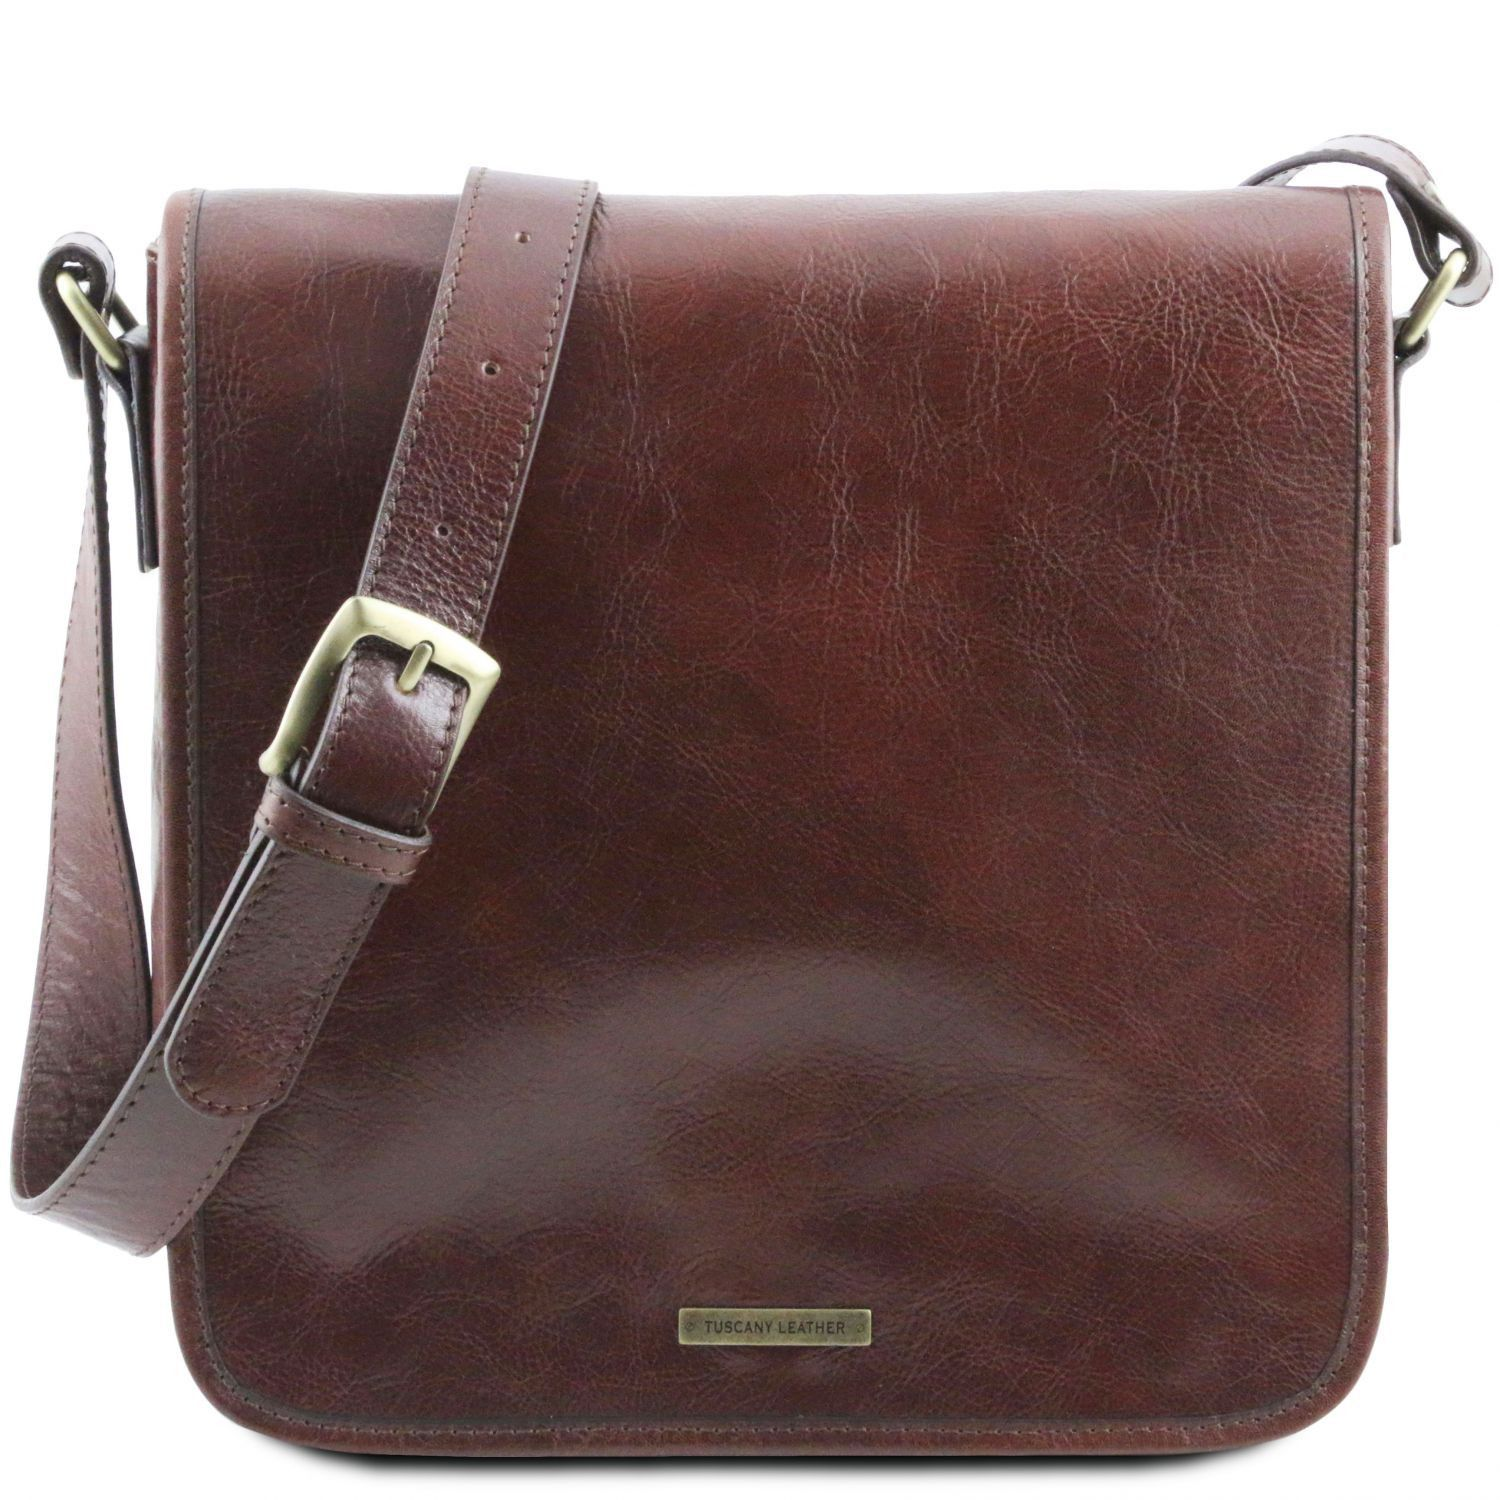 Tuscany Leather 'TL Messenger' One Compartment Leather Shoulder Bag Messenger Bag Tuscany Leather Brown